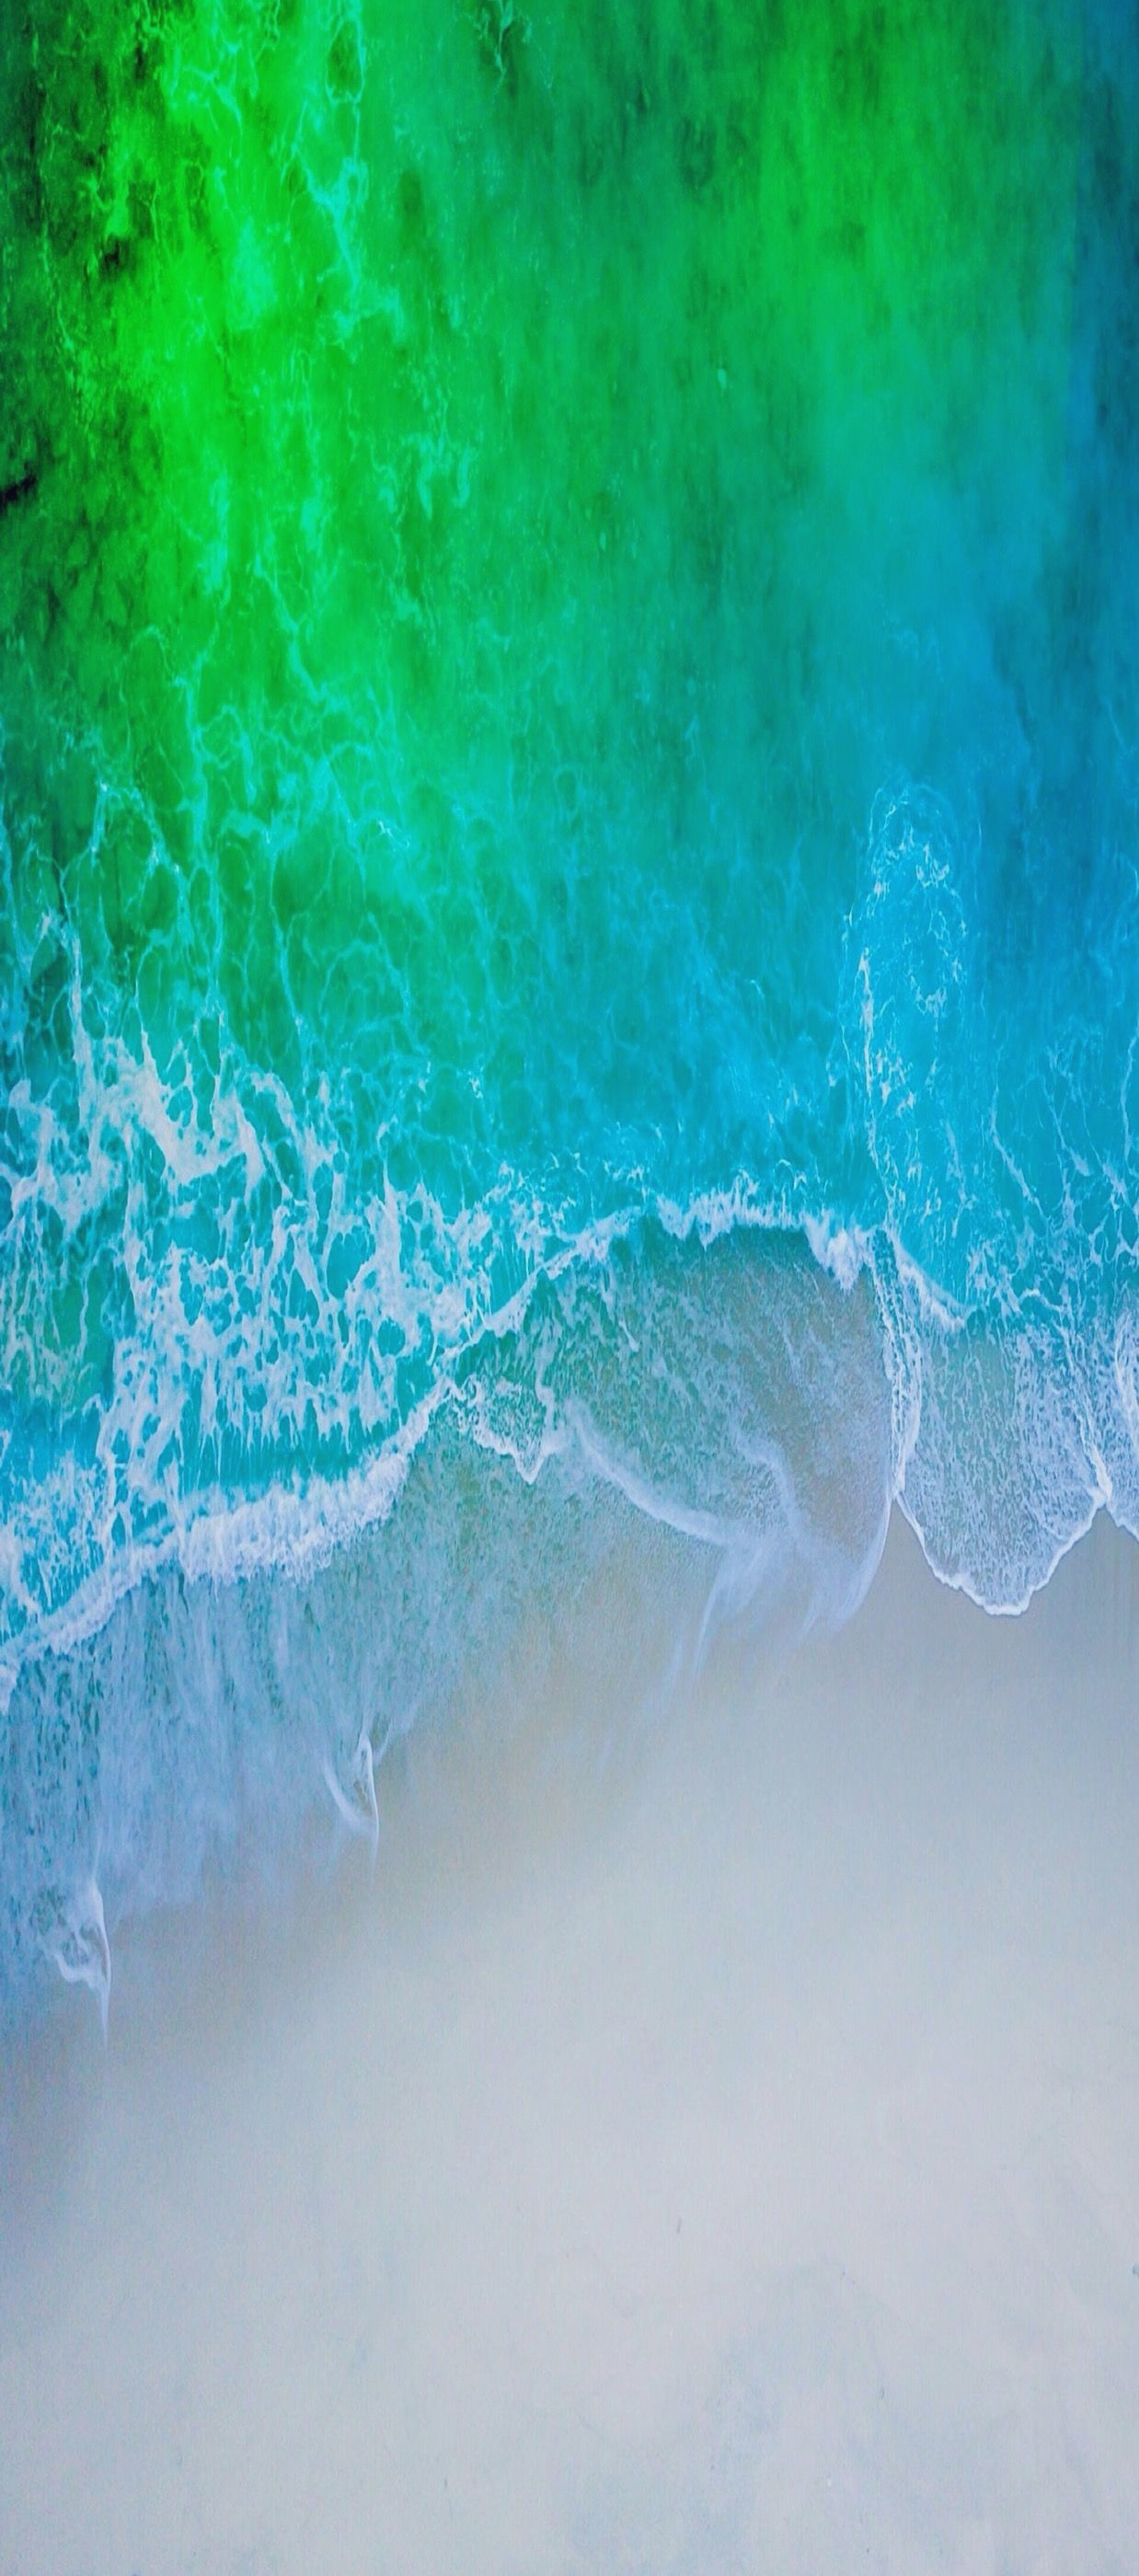 Water Wallpapers For Iphone Posted By John Thompson